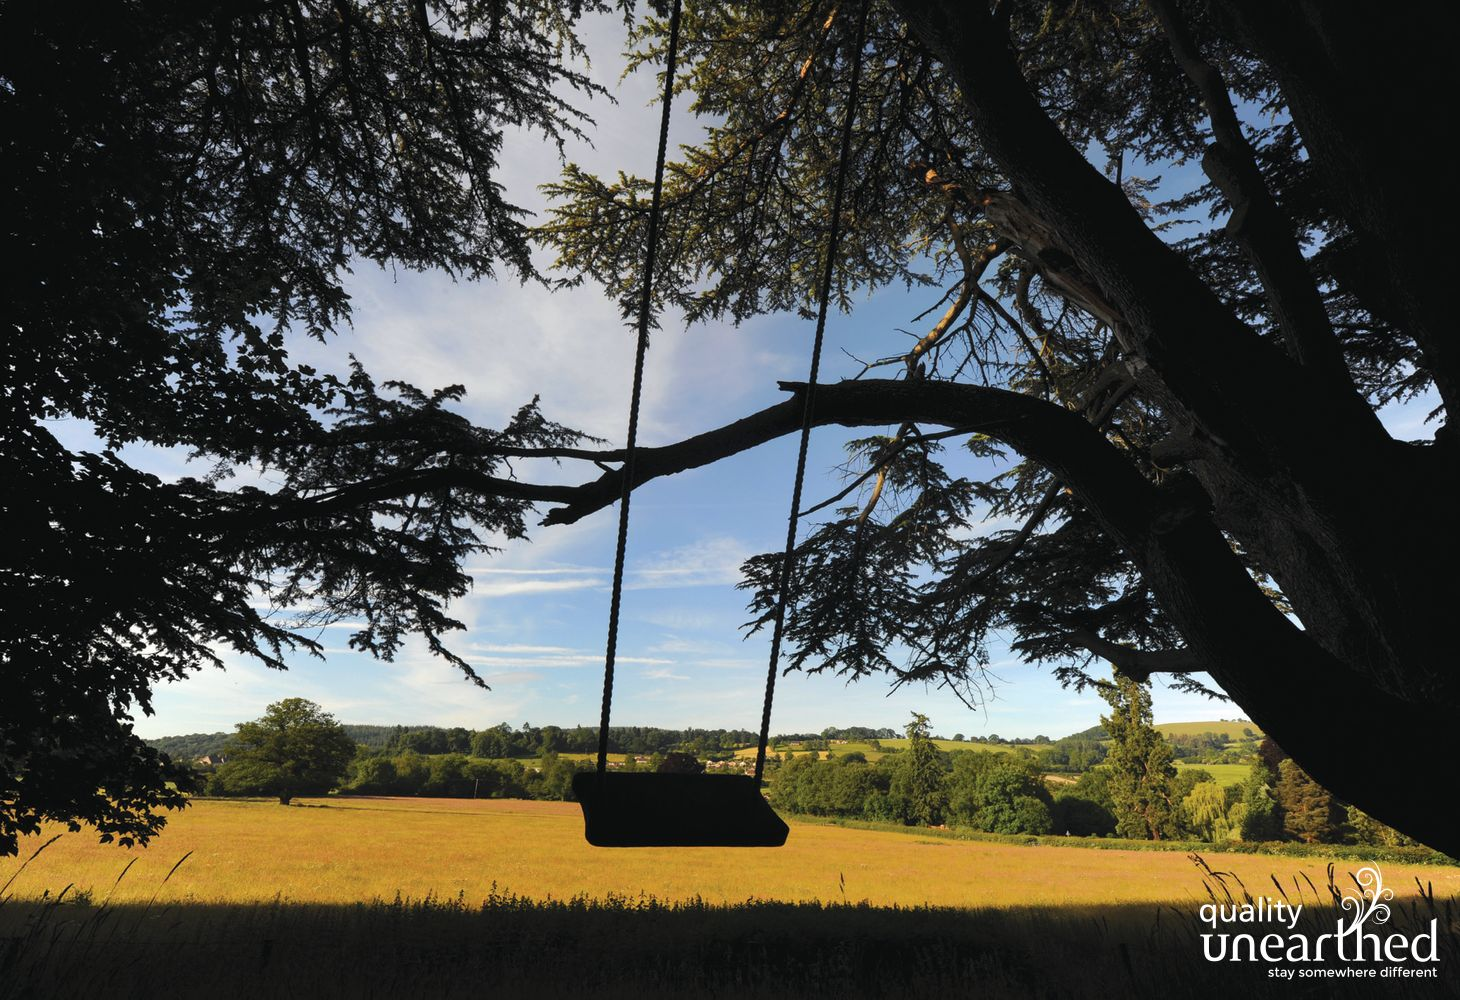 A swing moves under the boughs of the trees in the grounds of the yurt